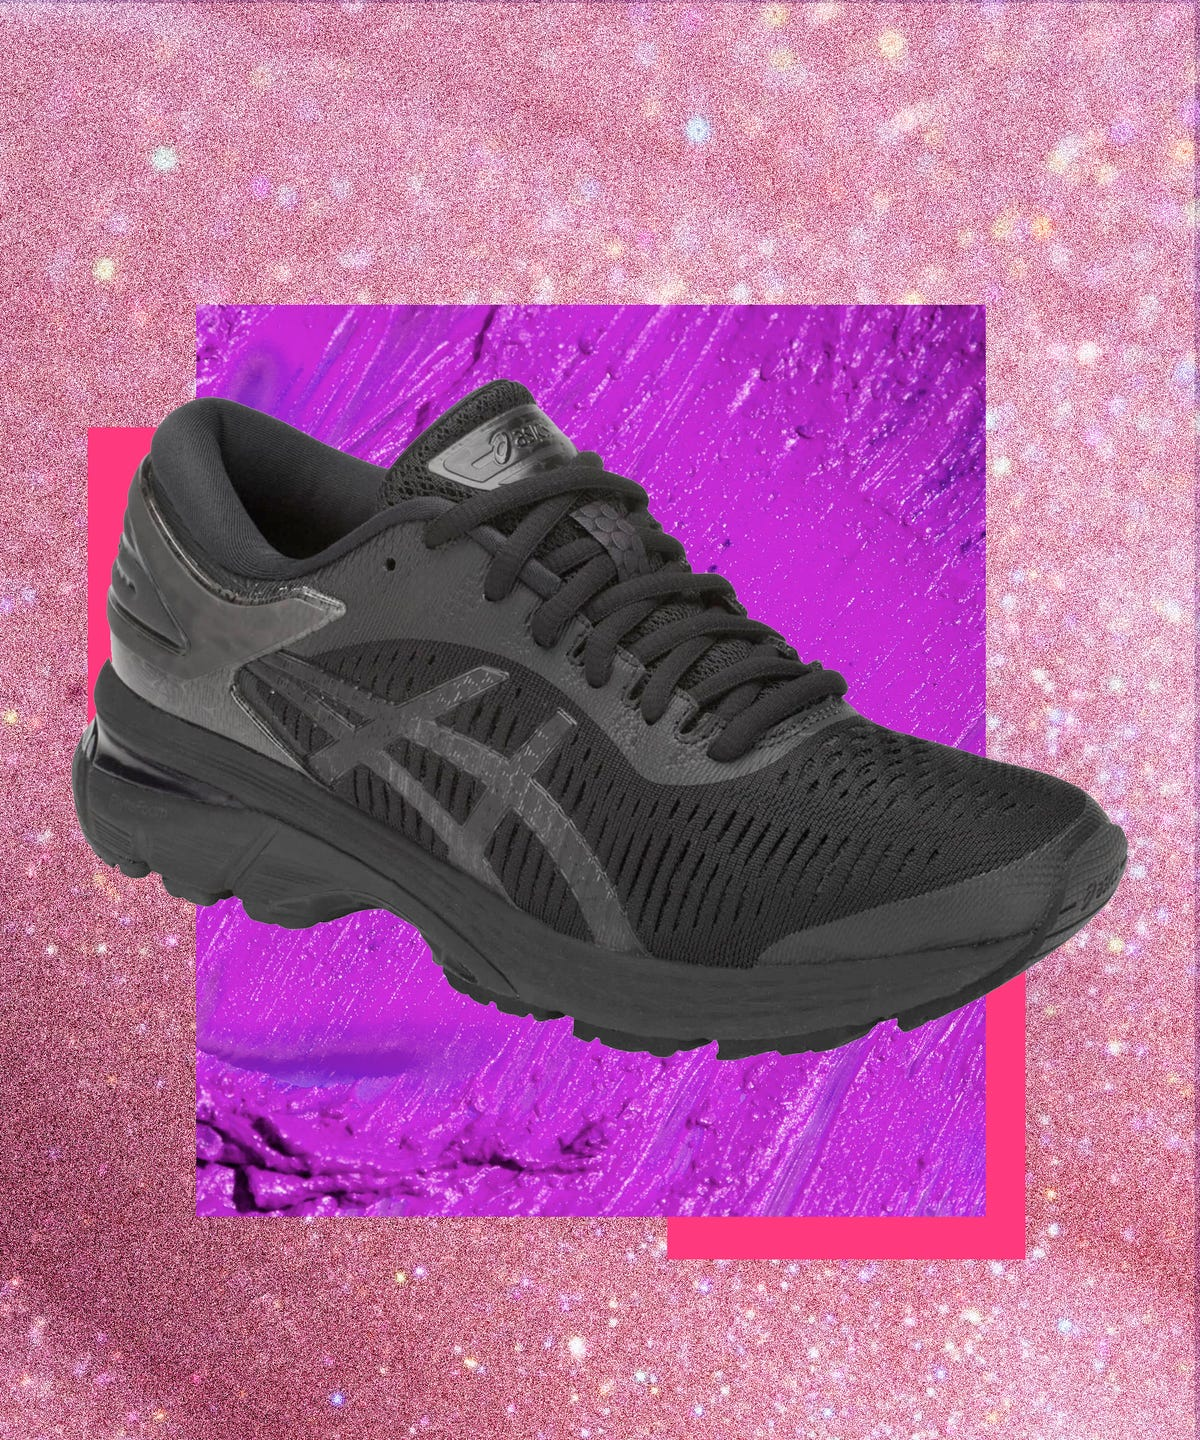 Old A These School Making Are Comeback Asics Sneakers SVqUMpGz